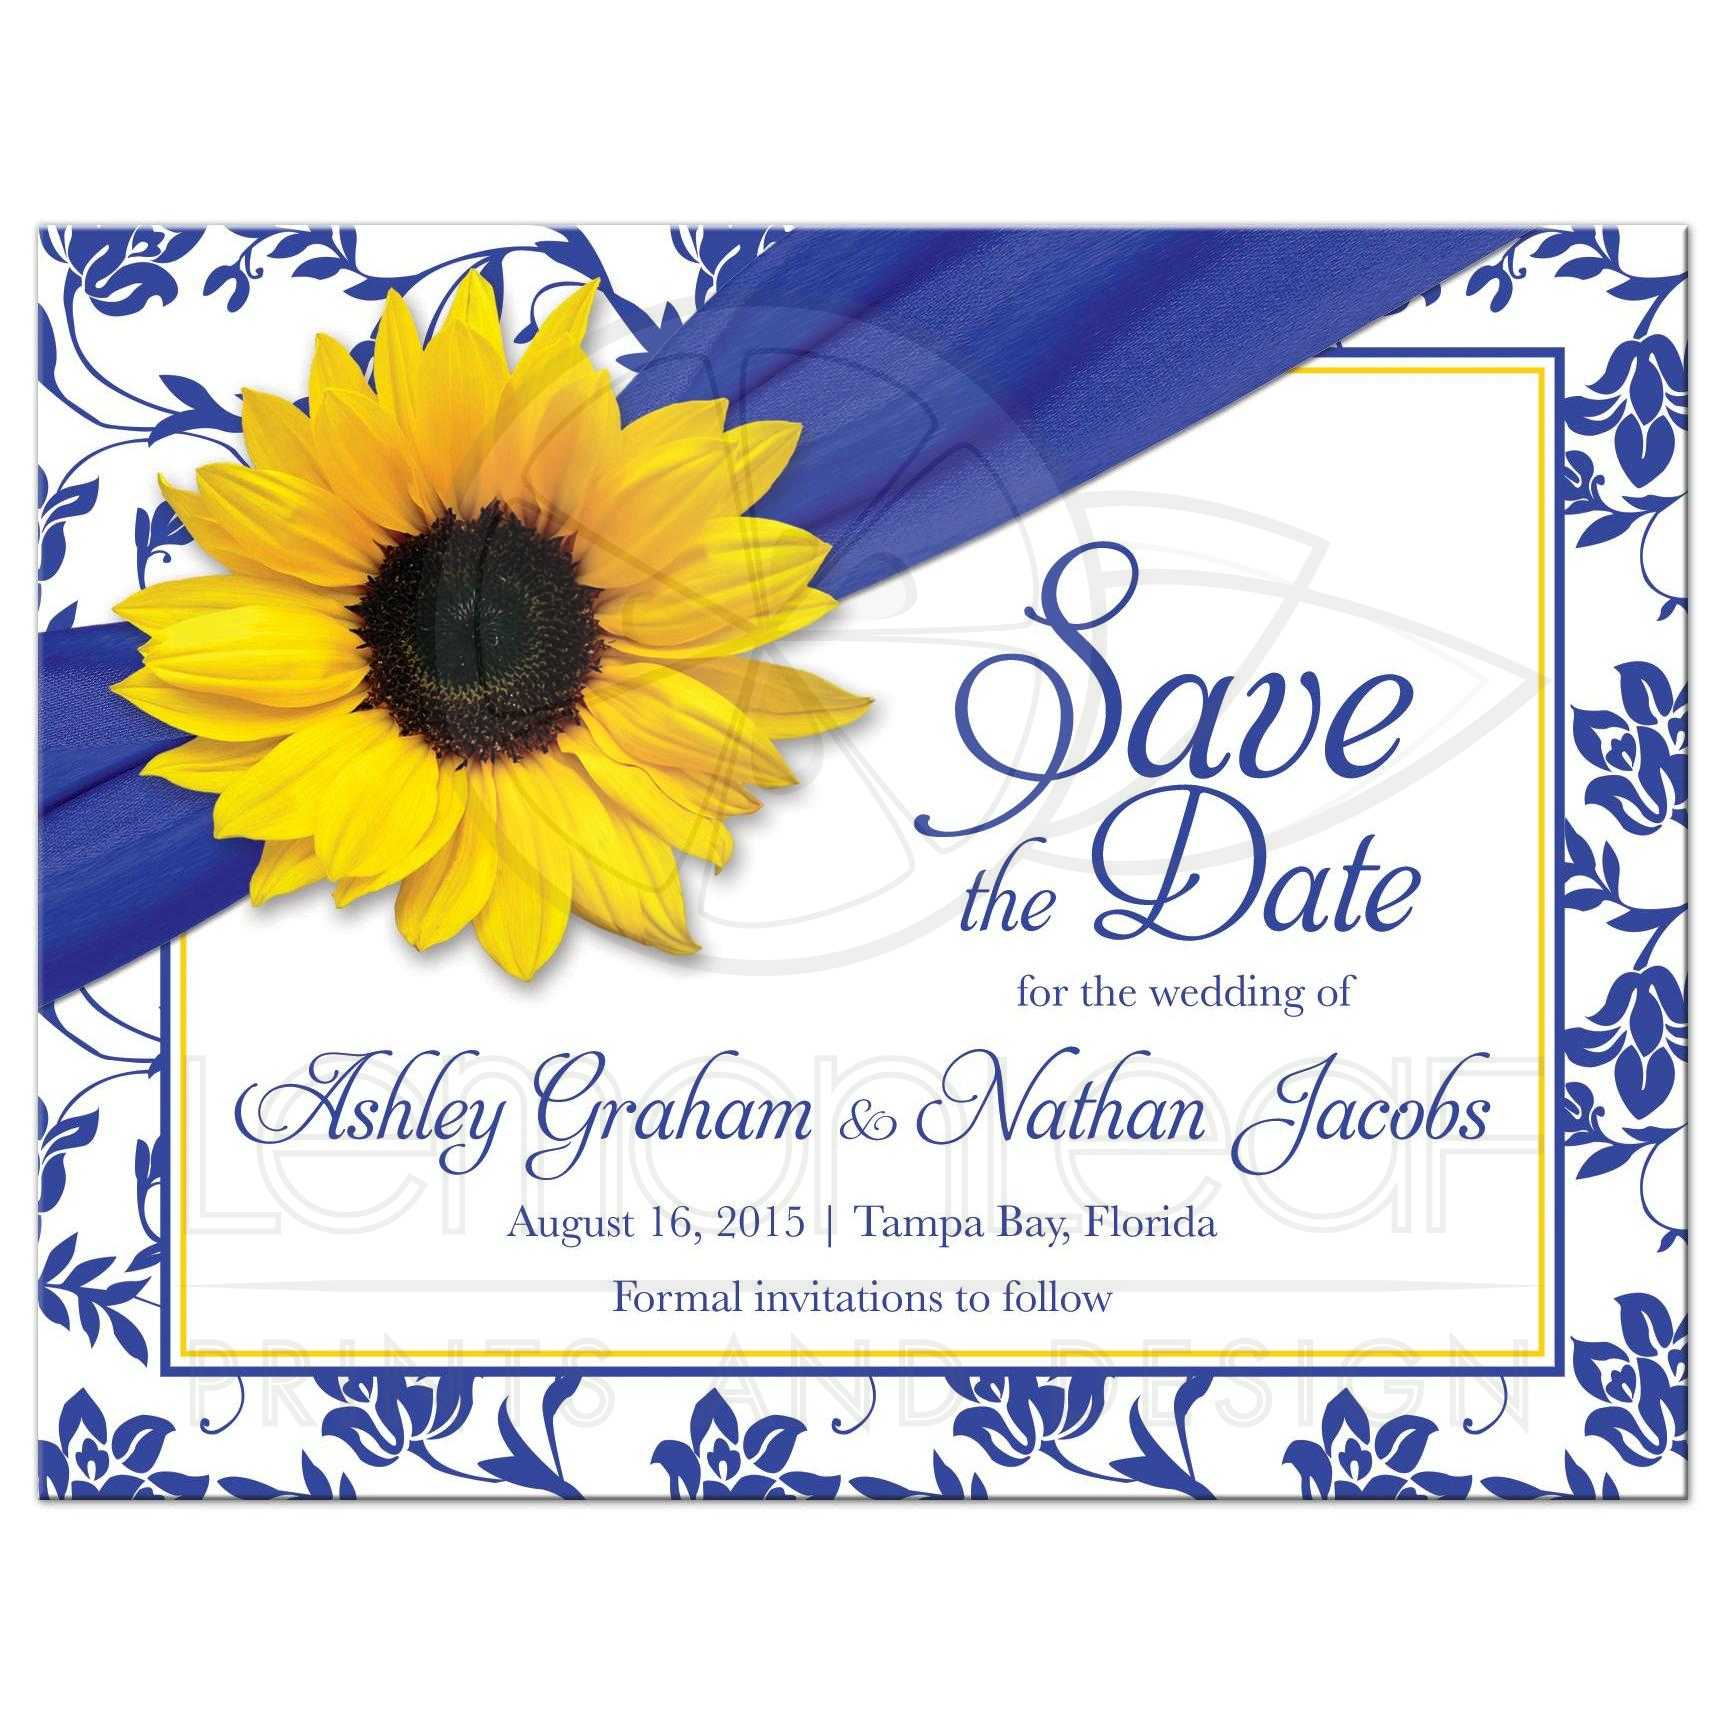 22559 Rectangle yellow sunflower royal blue and white damask wedding save the date invitation or postcard front - Royal Wedding Announcement